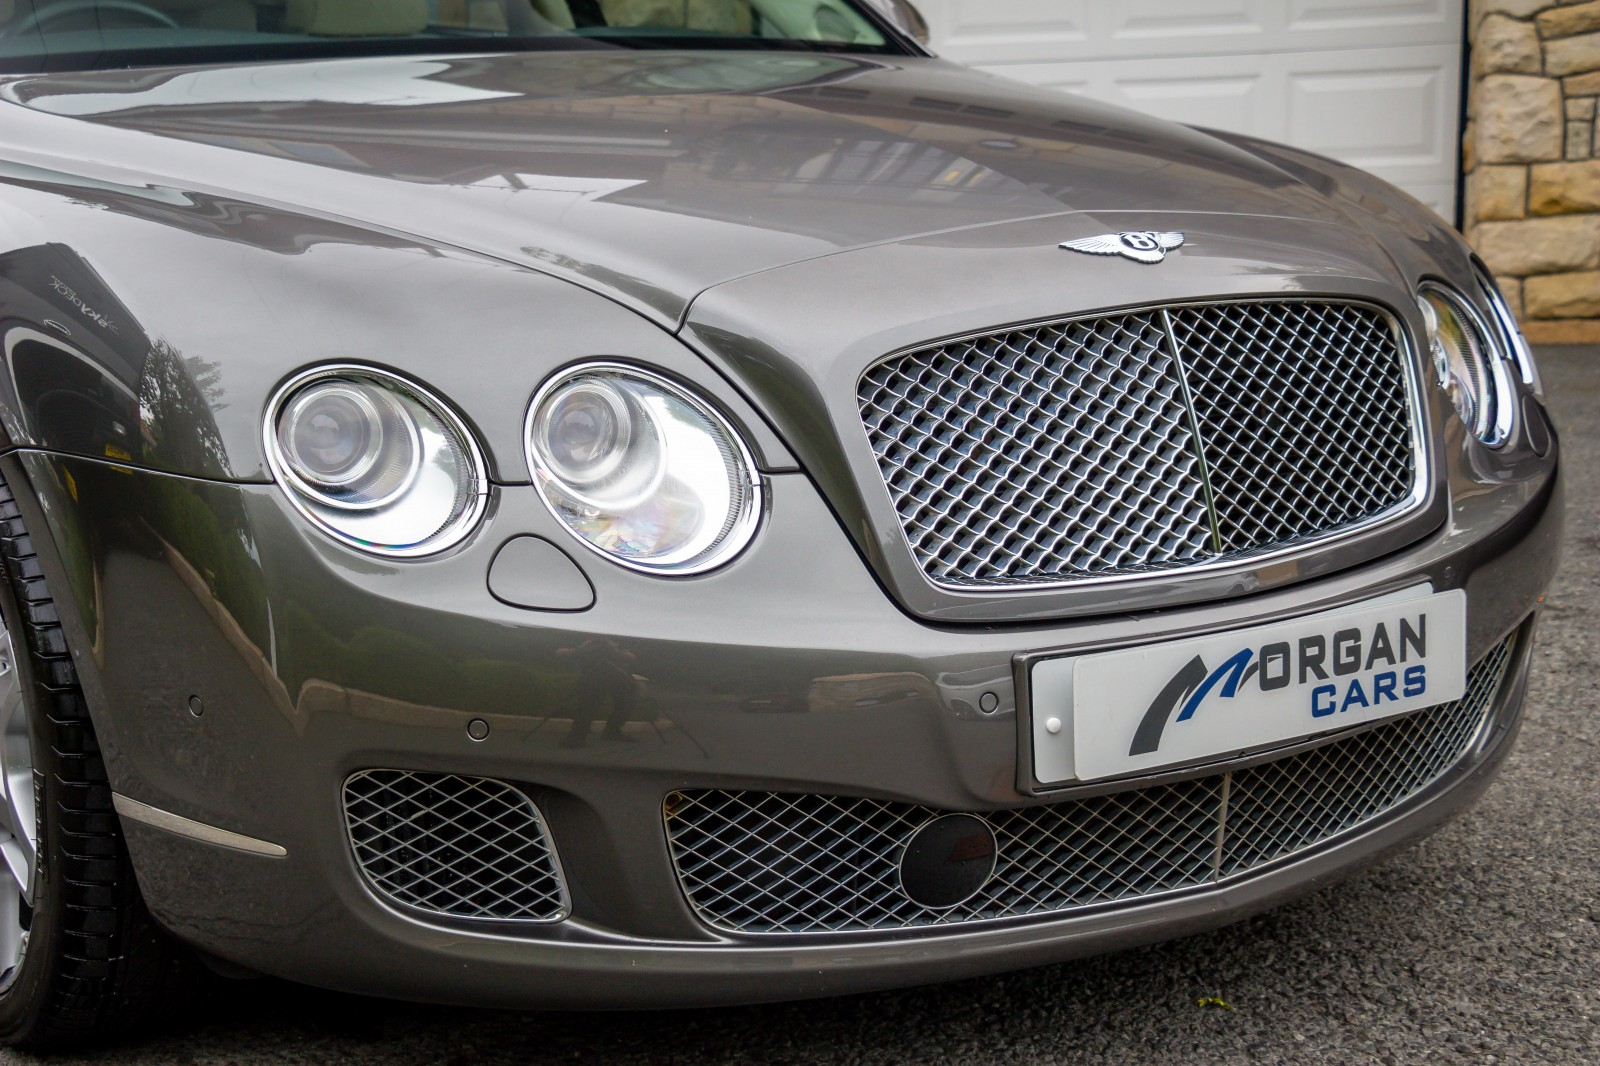 2012 Bentley Continental FLYING SPUR 6.0 W12 Petrol Automatic – Morgan Cars 9 Mound Road, Warrenpoint, Newry BT34 3LW, UK full